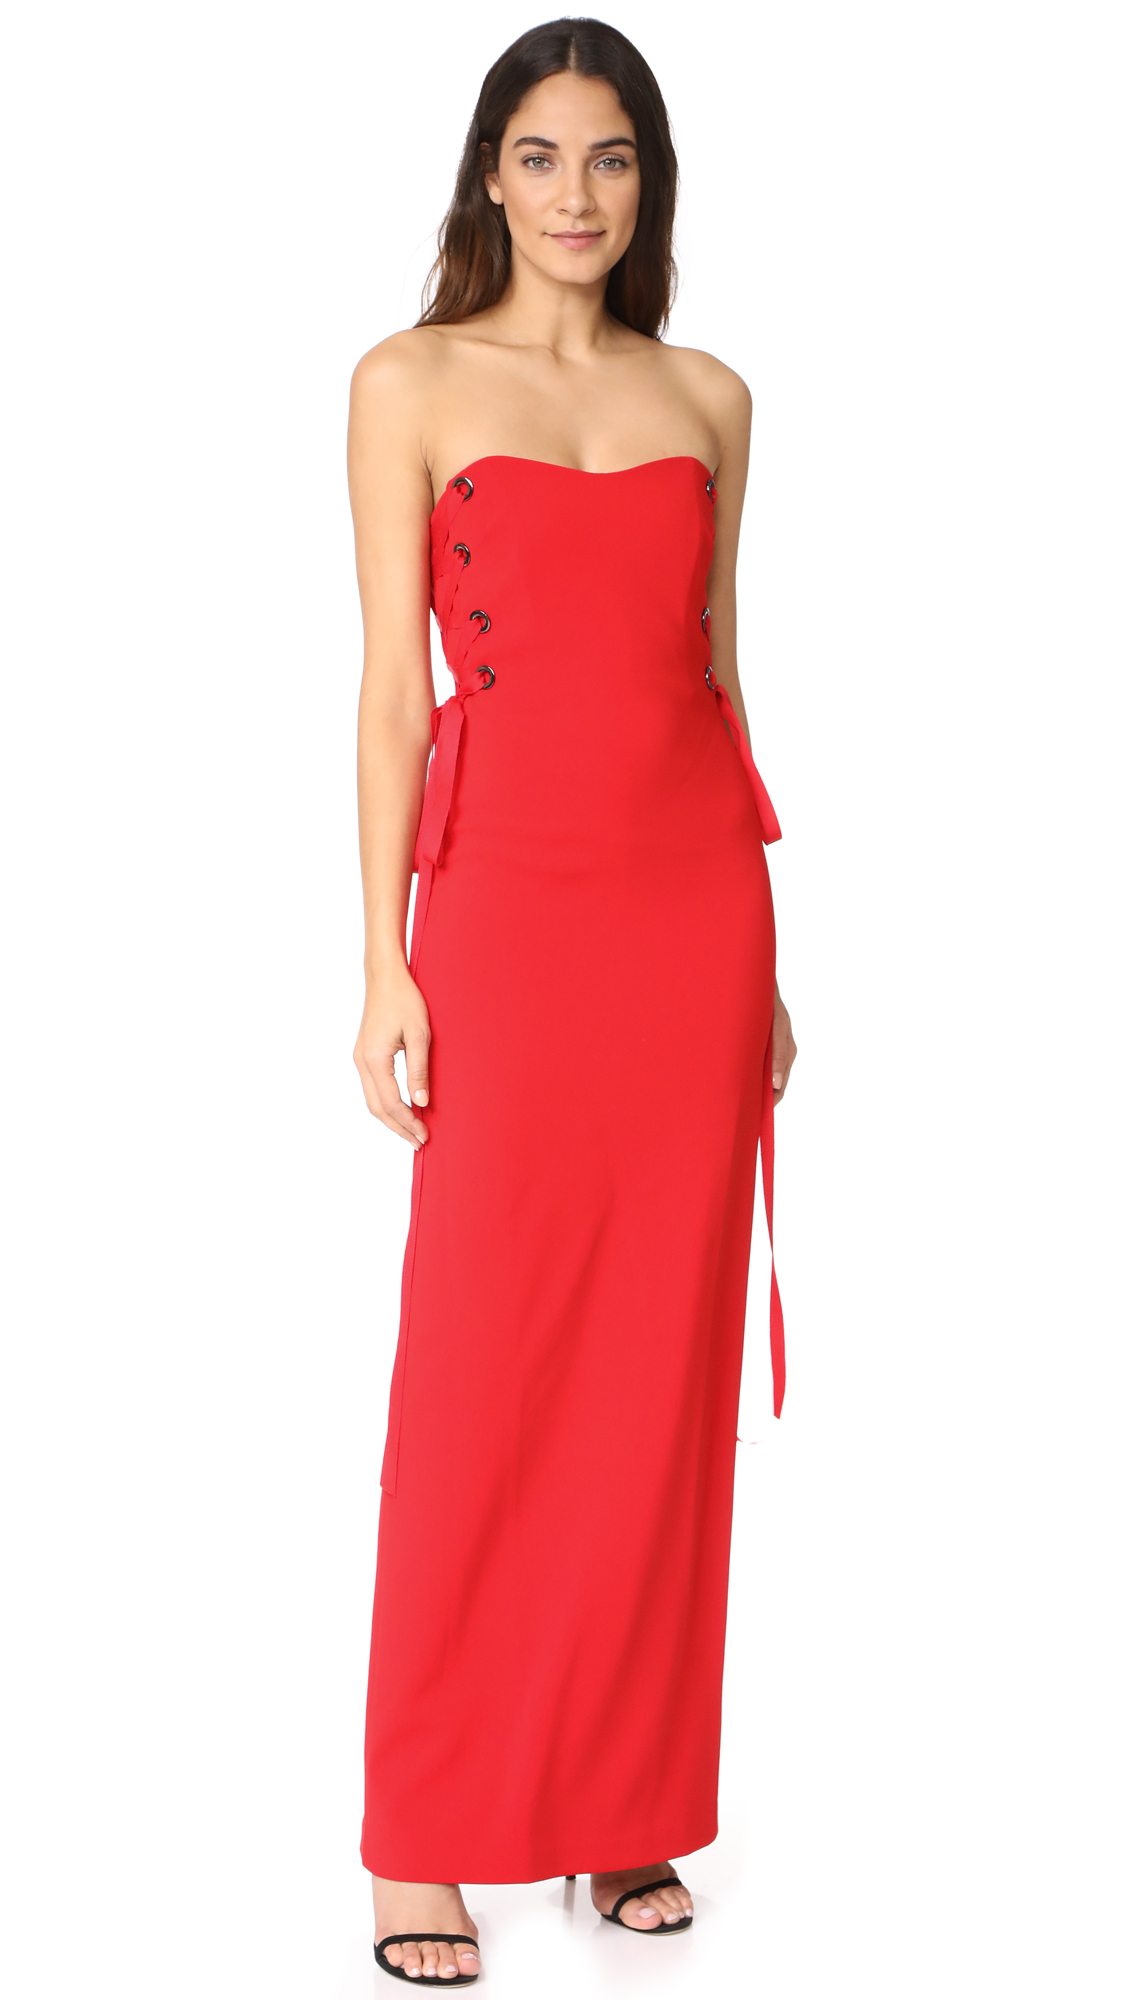 Badgley Mischka Collection Strapless Lace Up Gown Shopbop